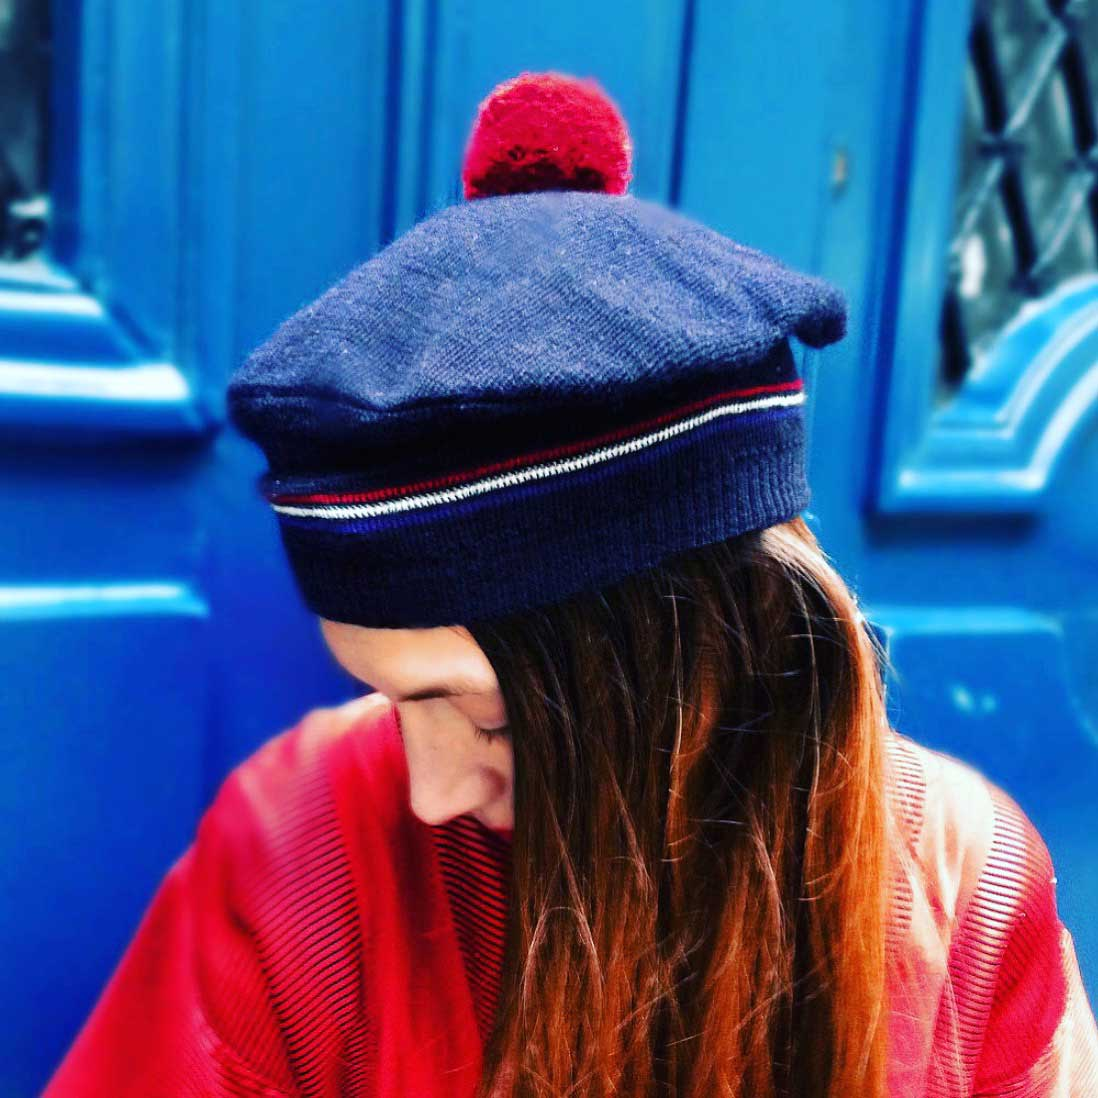 Freshwater Marin Made In France Reveal The Soul Of Sailor You 44 Winter Hat Wh 94 More Details